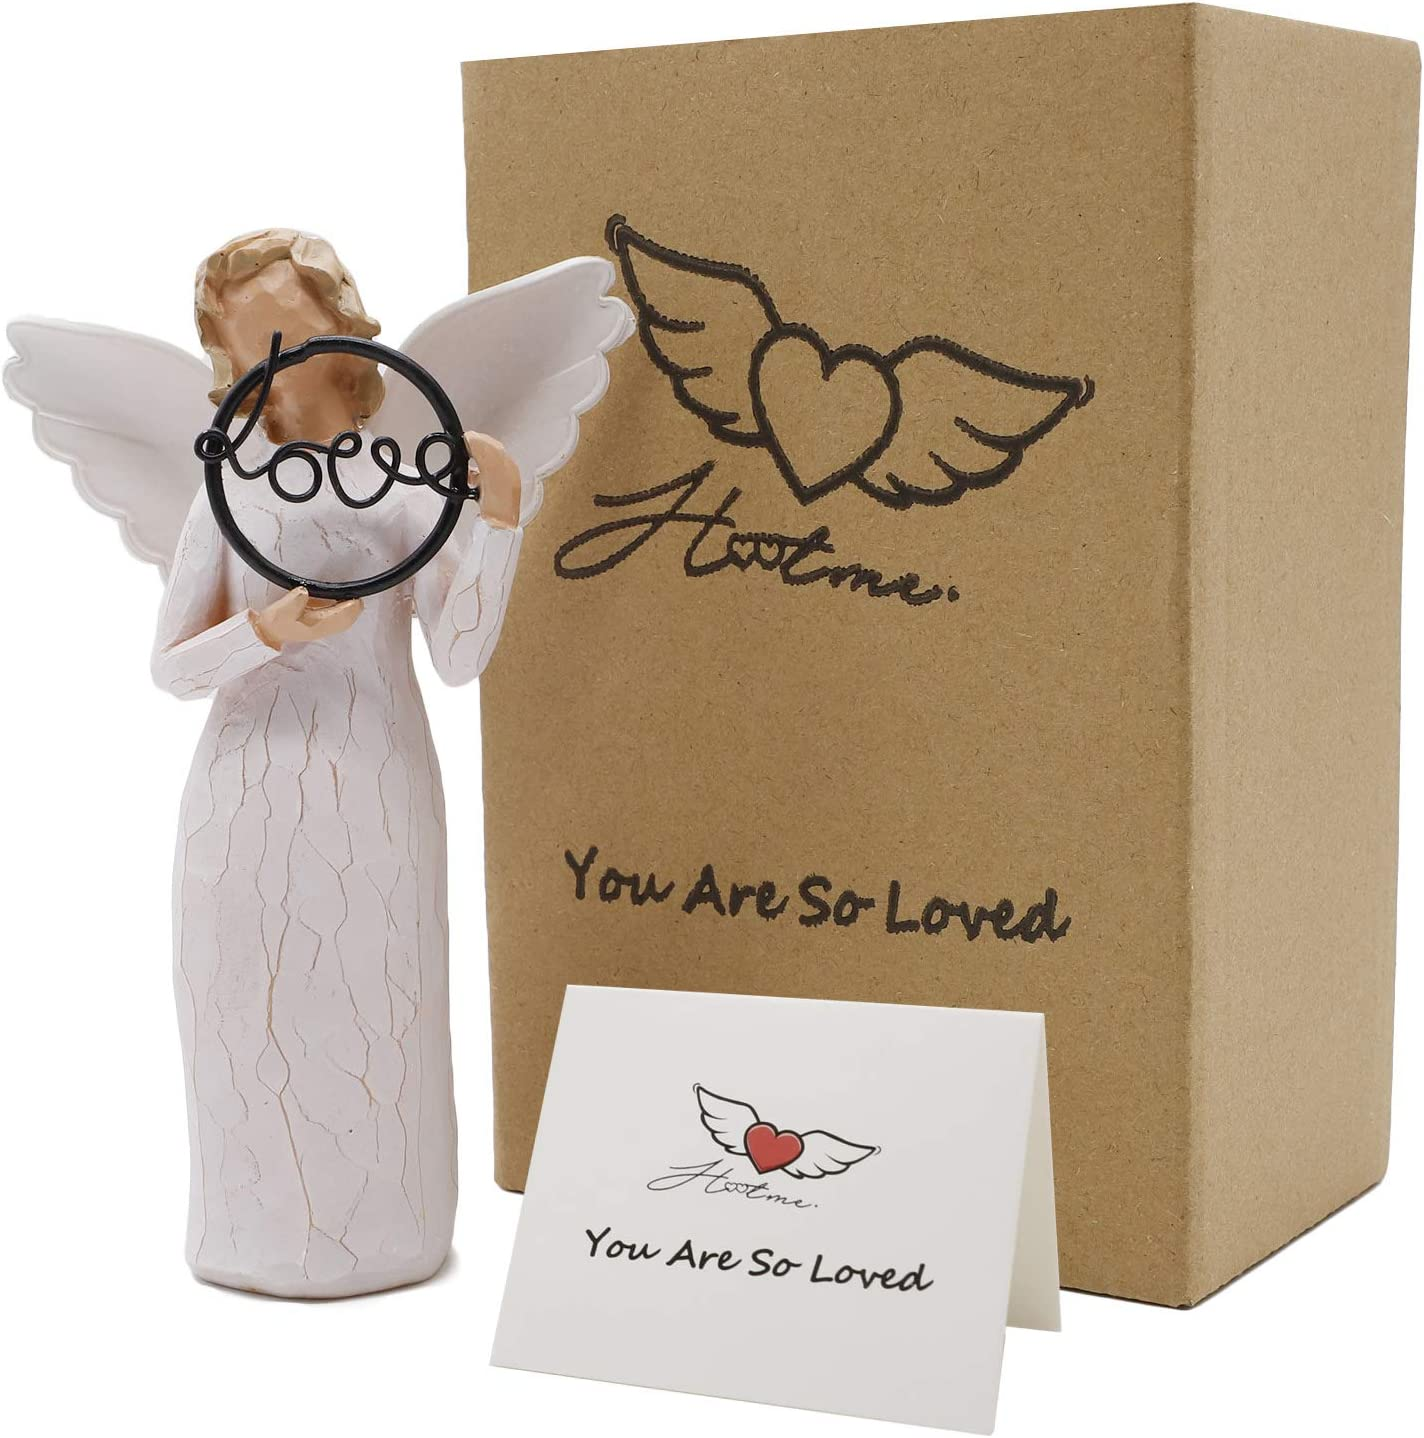 Guardian Angel Figurine, You are So Loved - Hand Carved Praying Angel Sculpture, Encouragement Present, Home Decoration Gift to Show Love, Sympathy, Gratitude, Bereavement, Friendship or Prayer